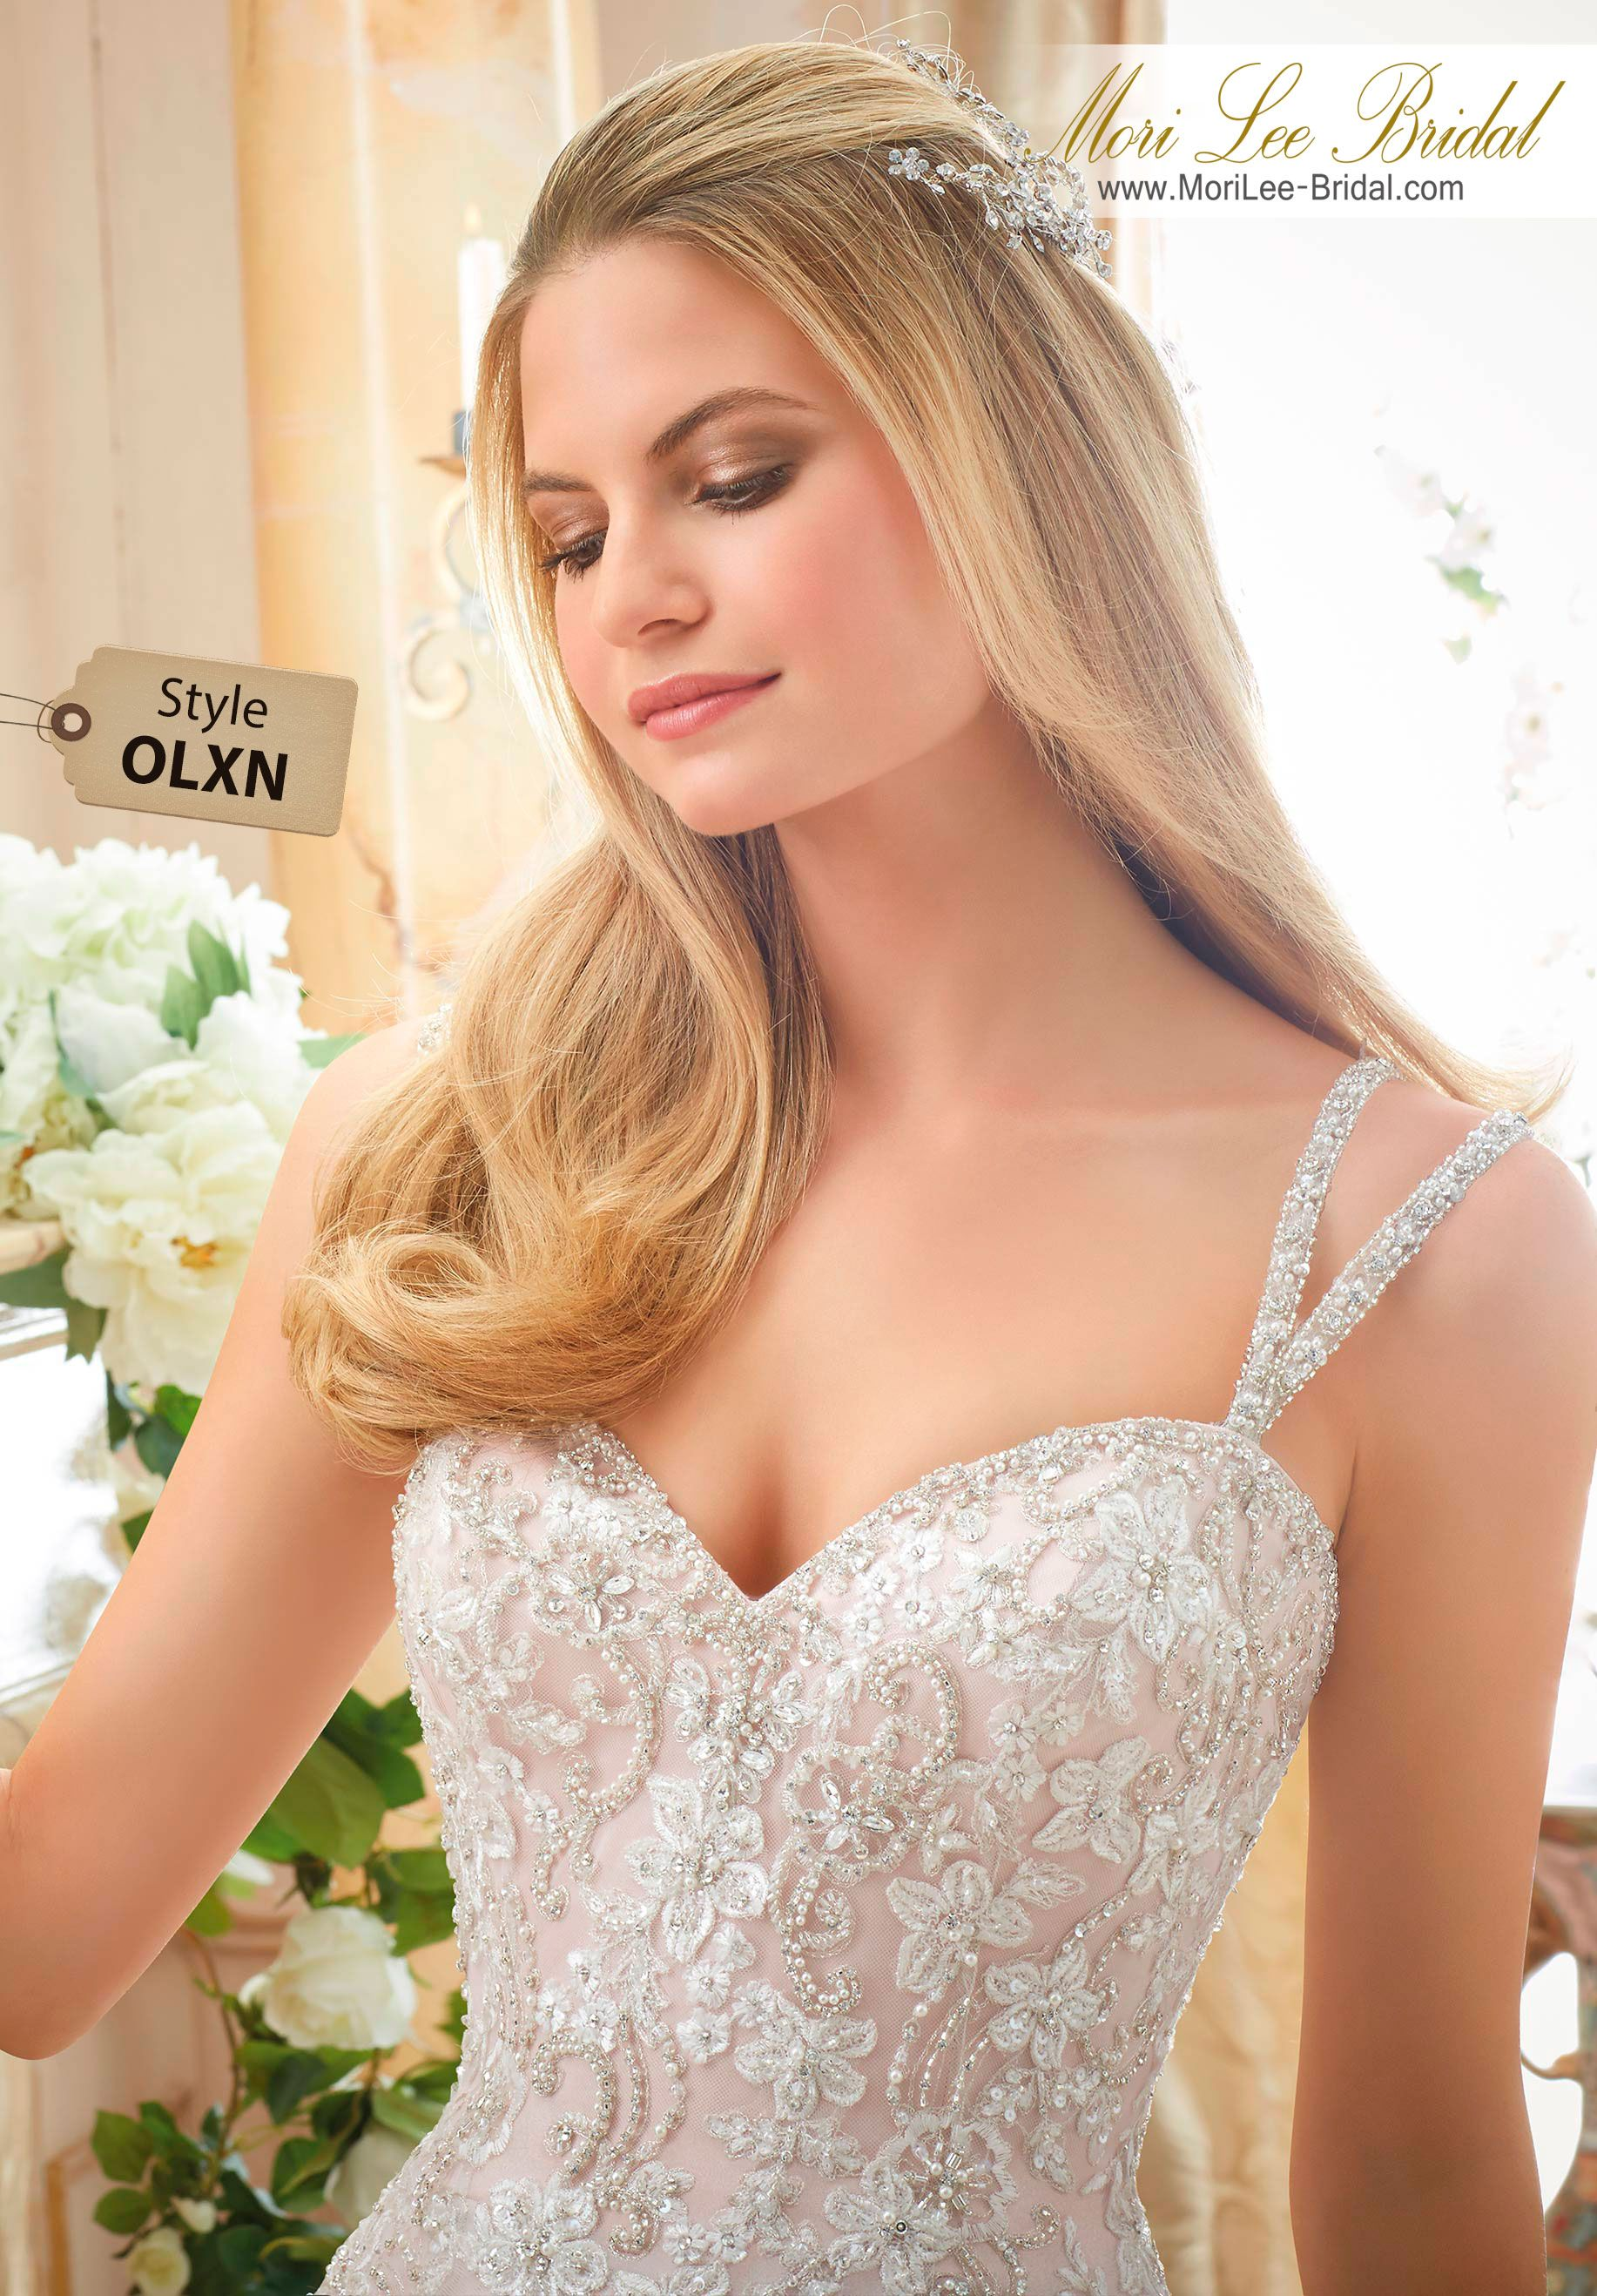 Dress style olxn elaborately beaded embroidery on soft tulle ball